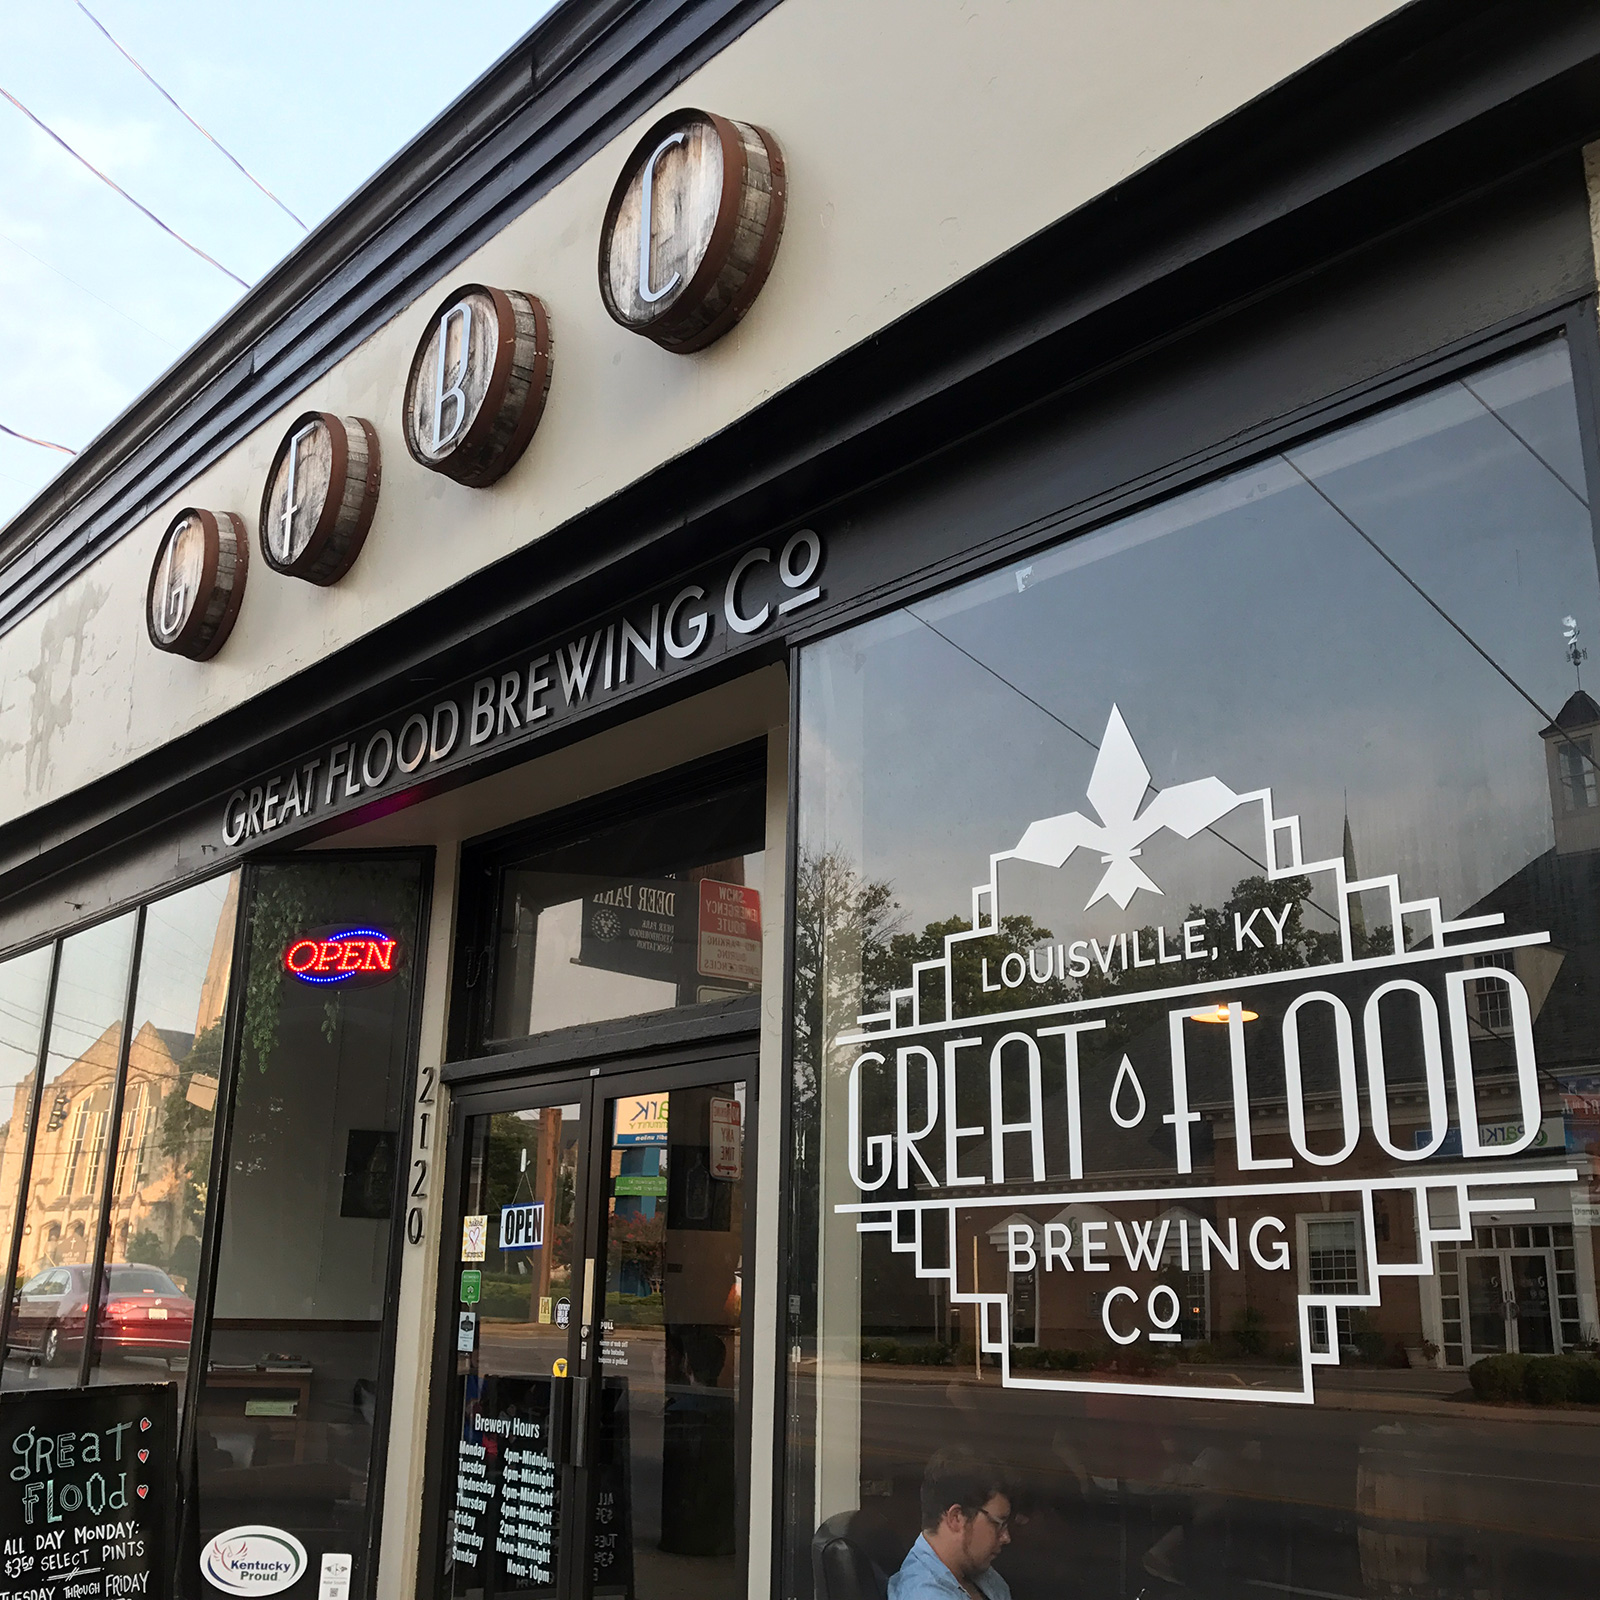 Great Flood Brewing Co. in Louisville, KY by Jets Like Taxis / Hopsmash